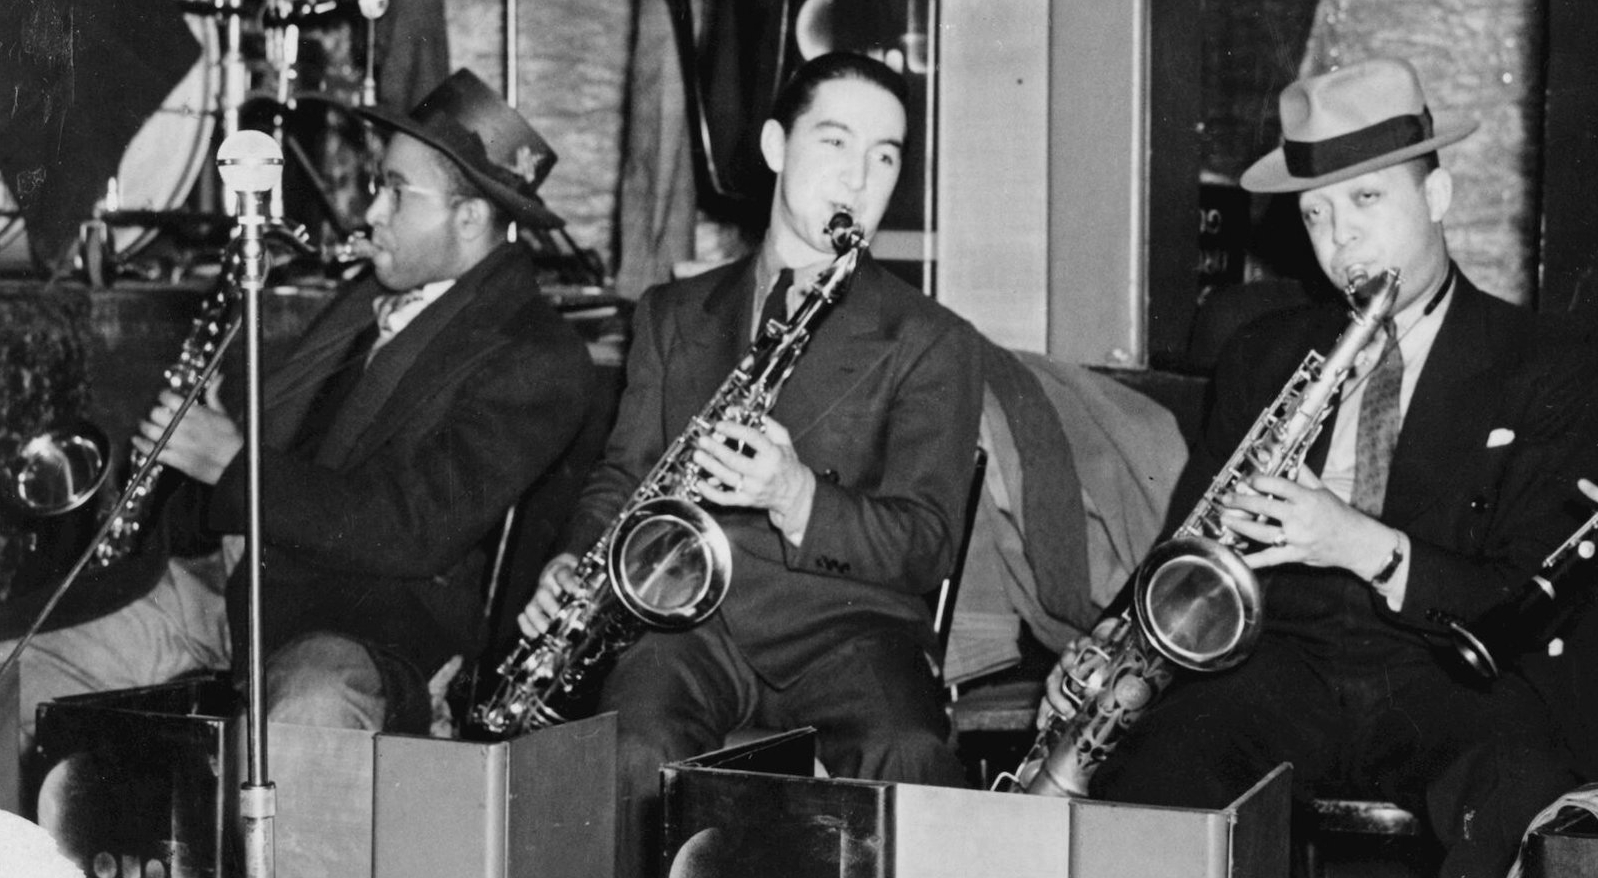 - Track 1 onlyMay 29, 1938Ed Lewis, Harry Edison, Buck Clayton, tptBennie Morton, Eddie Durham, Dan Minor, tbnEarle Warren, as, Jack Washington, as, bar,Herschel Evans, Lester Young, cl, tsCount Basie, p, Freddie Green, g, Walter Page, b, Jo Jones, dTracks 2 & 3 (Recorded August 18, 1938)Track 4 (Recorded August 28, 1938)Tracks 5 & 6 (Recorded August 31, 1938)Tracks 7 & 8 (Recorded October 11, 1938)Tracks 9 & 10 (Recorded October 19, 1938)Tracks 11 & 12 (Recorded November 2, 1938)Ed Lewis, Harry Edison, Buck Clayton, tptBennie Morton, Dicky Wells, Dan Minor, tbnEarle Warren, as, Jack Washington, as, bar,Herschel Evans, Lester Young, cl, tsCount Basie, p, Freddie Green, g, Walter Page, b, Jo Jones, dHelen Humes, Jimmy Rushing, vocTracks 13 & 14 (Recorded April 2, 1939)Tracks 15-18 (Recorded May 19, 1939)Track 19 (Recorded December 9, 1939)Ed Lewis, Shad Collins, Harry Edison, Buck Clayton, tptBennie Morton, Dicky Wells, Dan Minor, tbnEarle Warren, as, Jack Washington, as, bar,Buddy Tate, Lester Young, cl, tsCount Basie, p, Freddie Green, g, Walter Page, b, Jo Jones, dJimmy Rushing, vocTracks 20-22 (Recorded February 28, 1940)Al Killian, Ed Lewis, Harry Edison, Buck Clayton, tptVic Dickenson, Dicky Wells, Dan Minor, tbnEarle Warren, as, Jack Washington, as, bar,Buddy Tate, Lester Young, cl, tsCount Basie, p, Freddie Green, g, Walter Page, b, Jo Jones, d